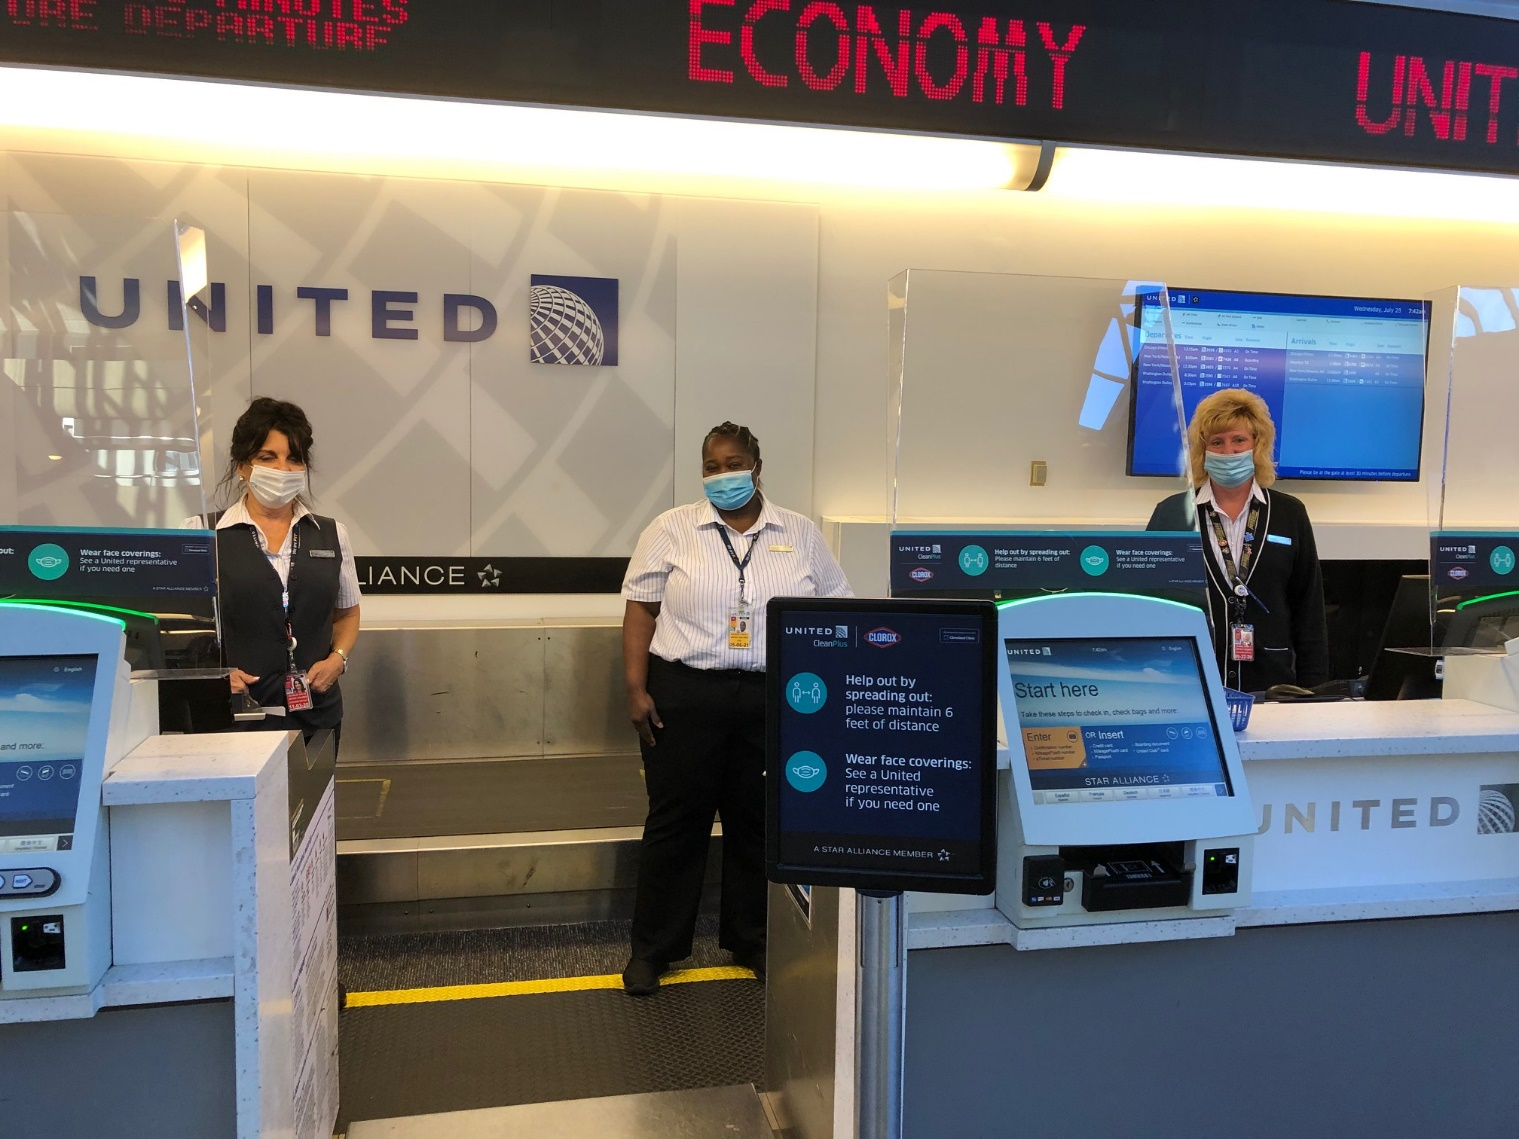 United airlines kios and counter